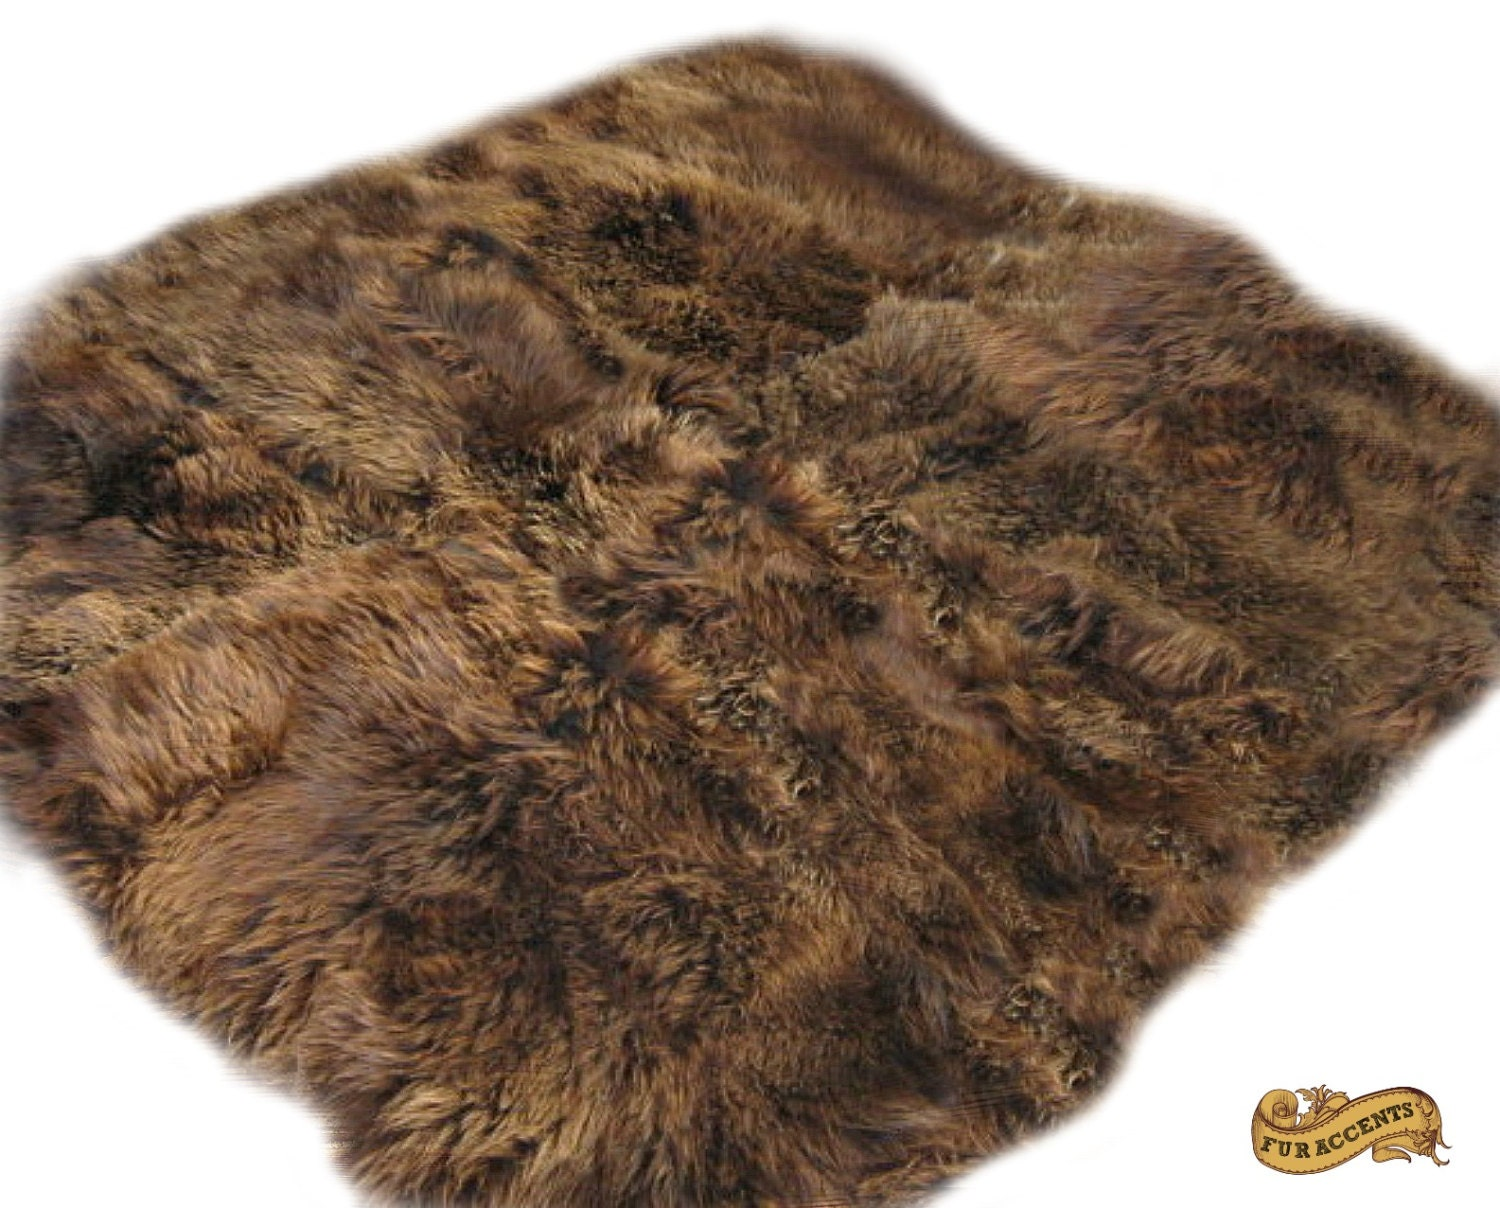 FUR ACCENTS Rocky Mountain Bear Skin Area Rug / By FurAccents